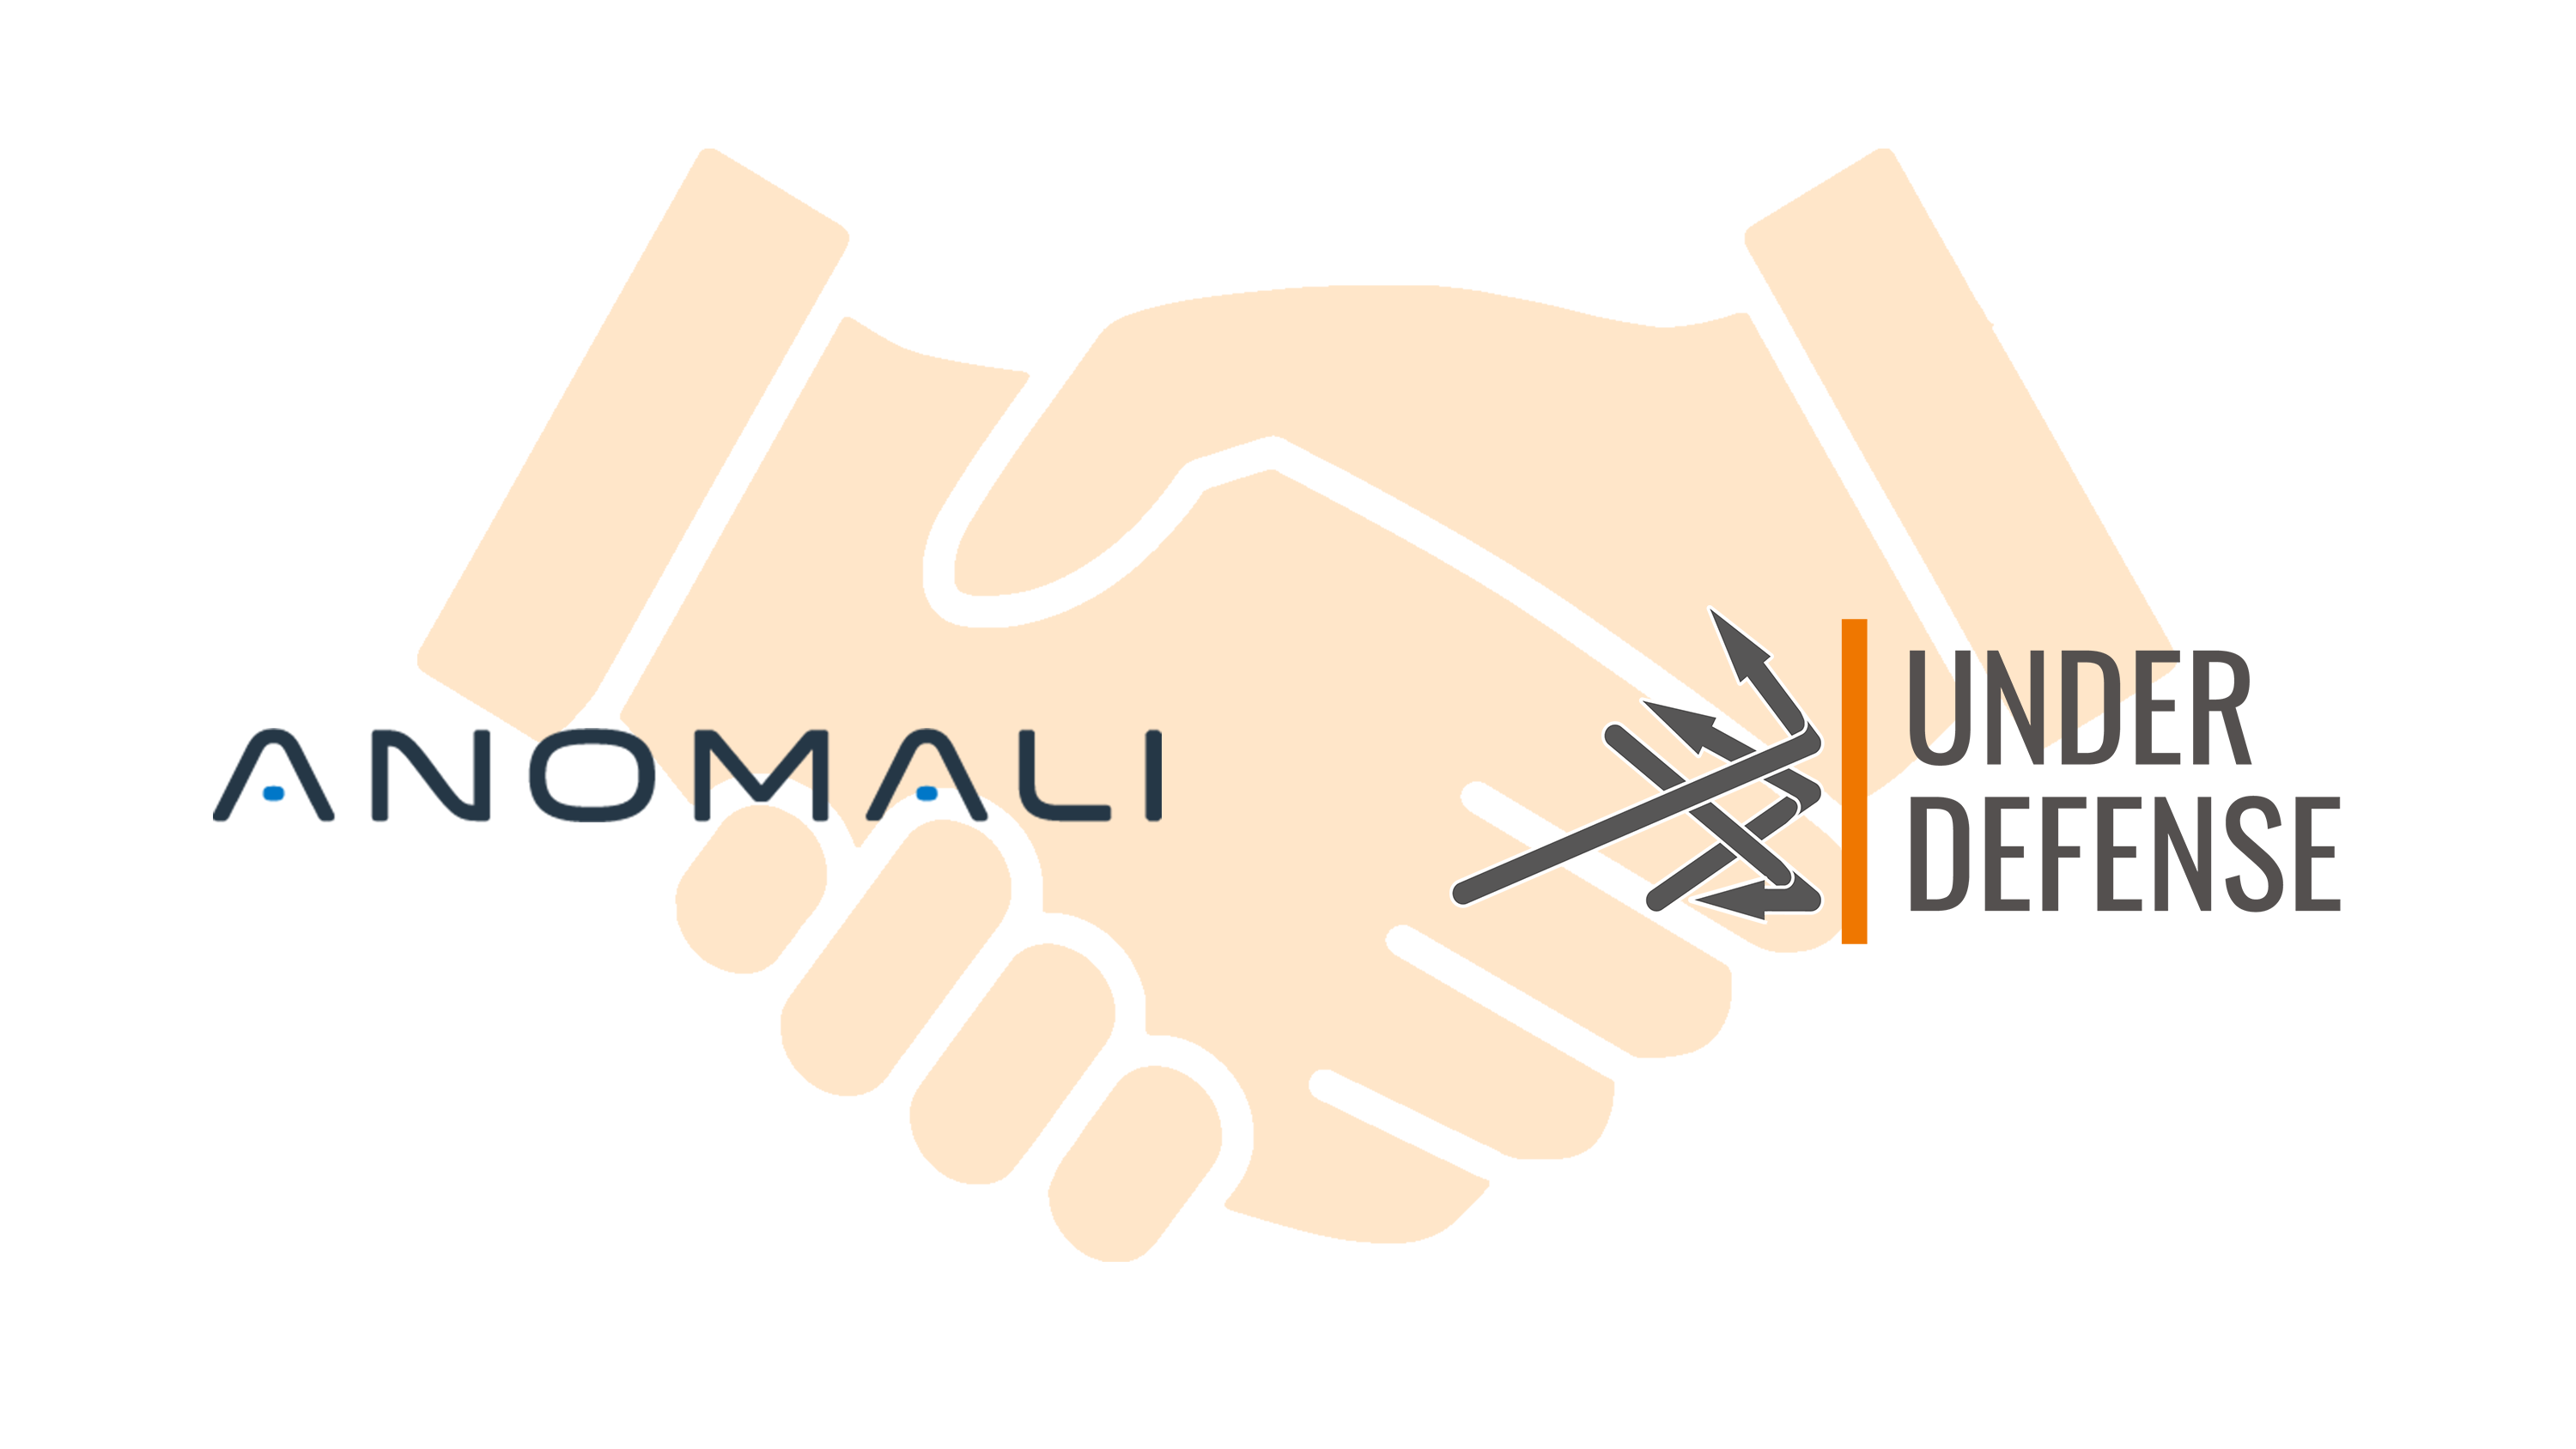 Anomali and UnderDefense partnership